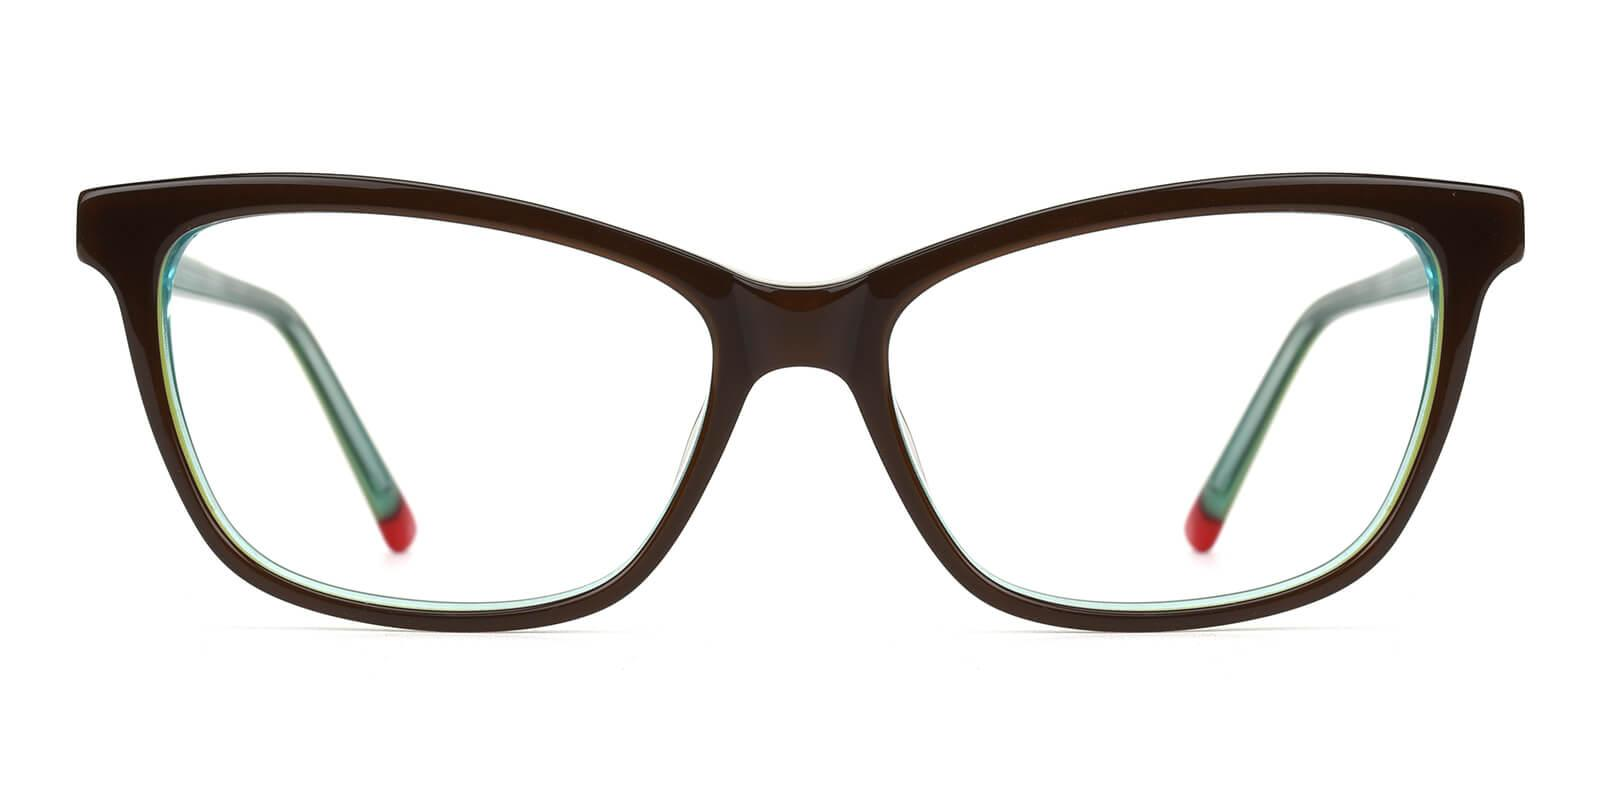 Clowdia-Green-Square / Cat-Acetate-Eyeglasses-additional2